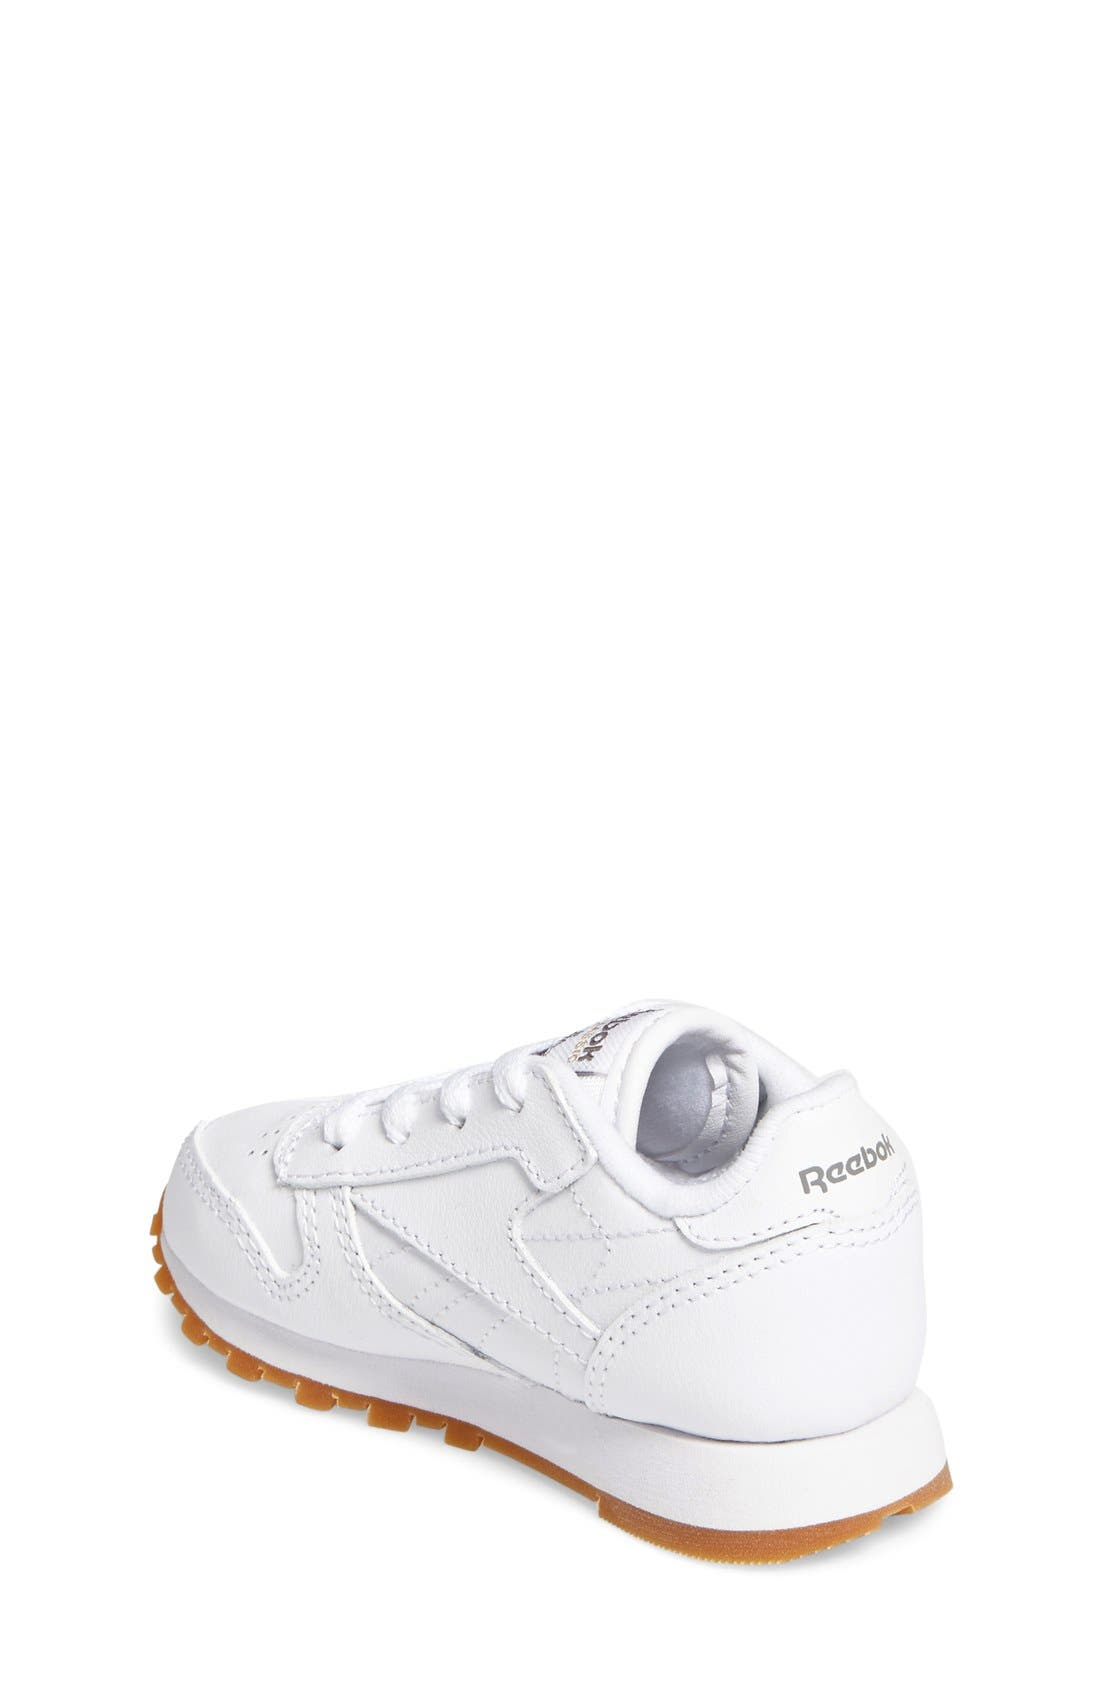 Classic Leather Sneaker,                             Alternate thumbnail 5, color,                             103